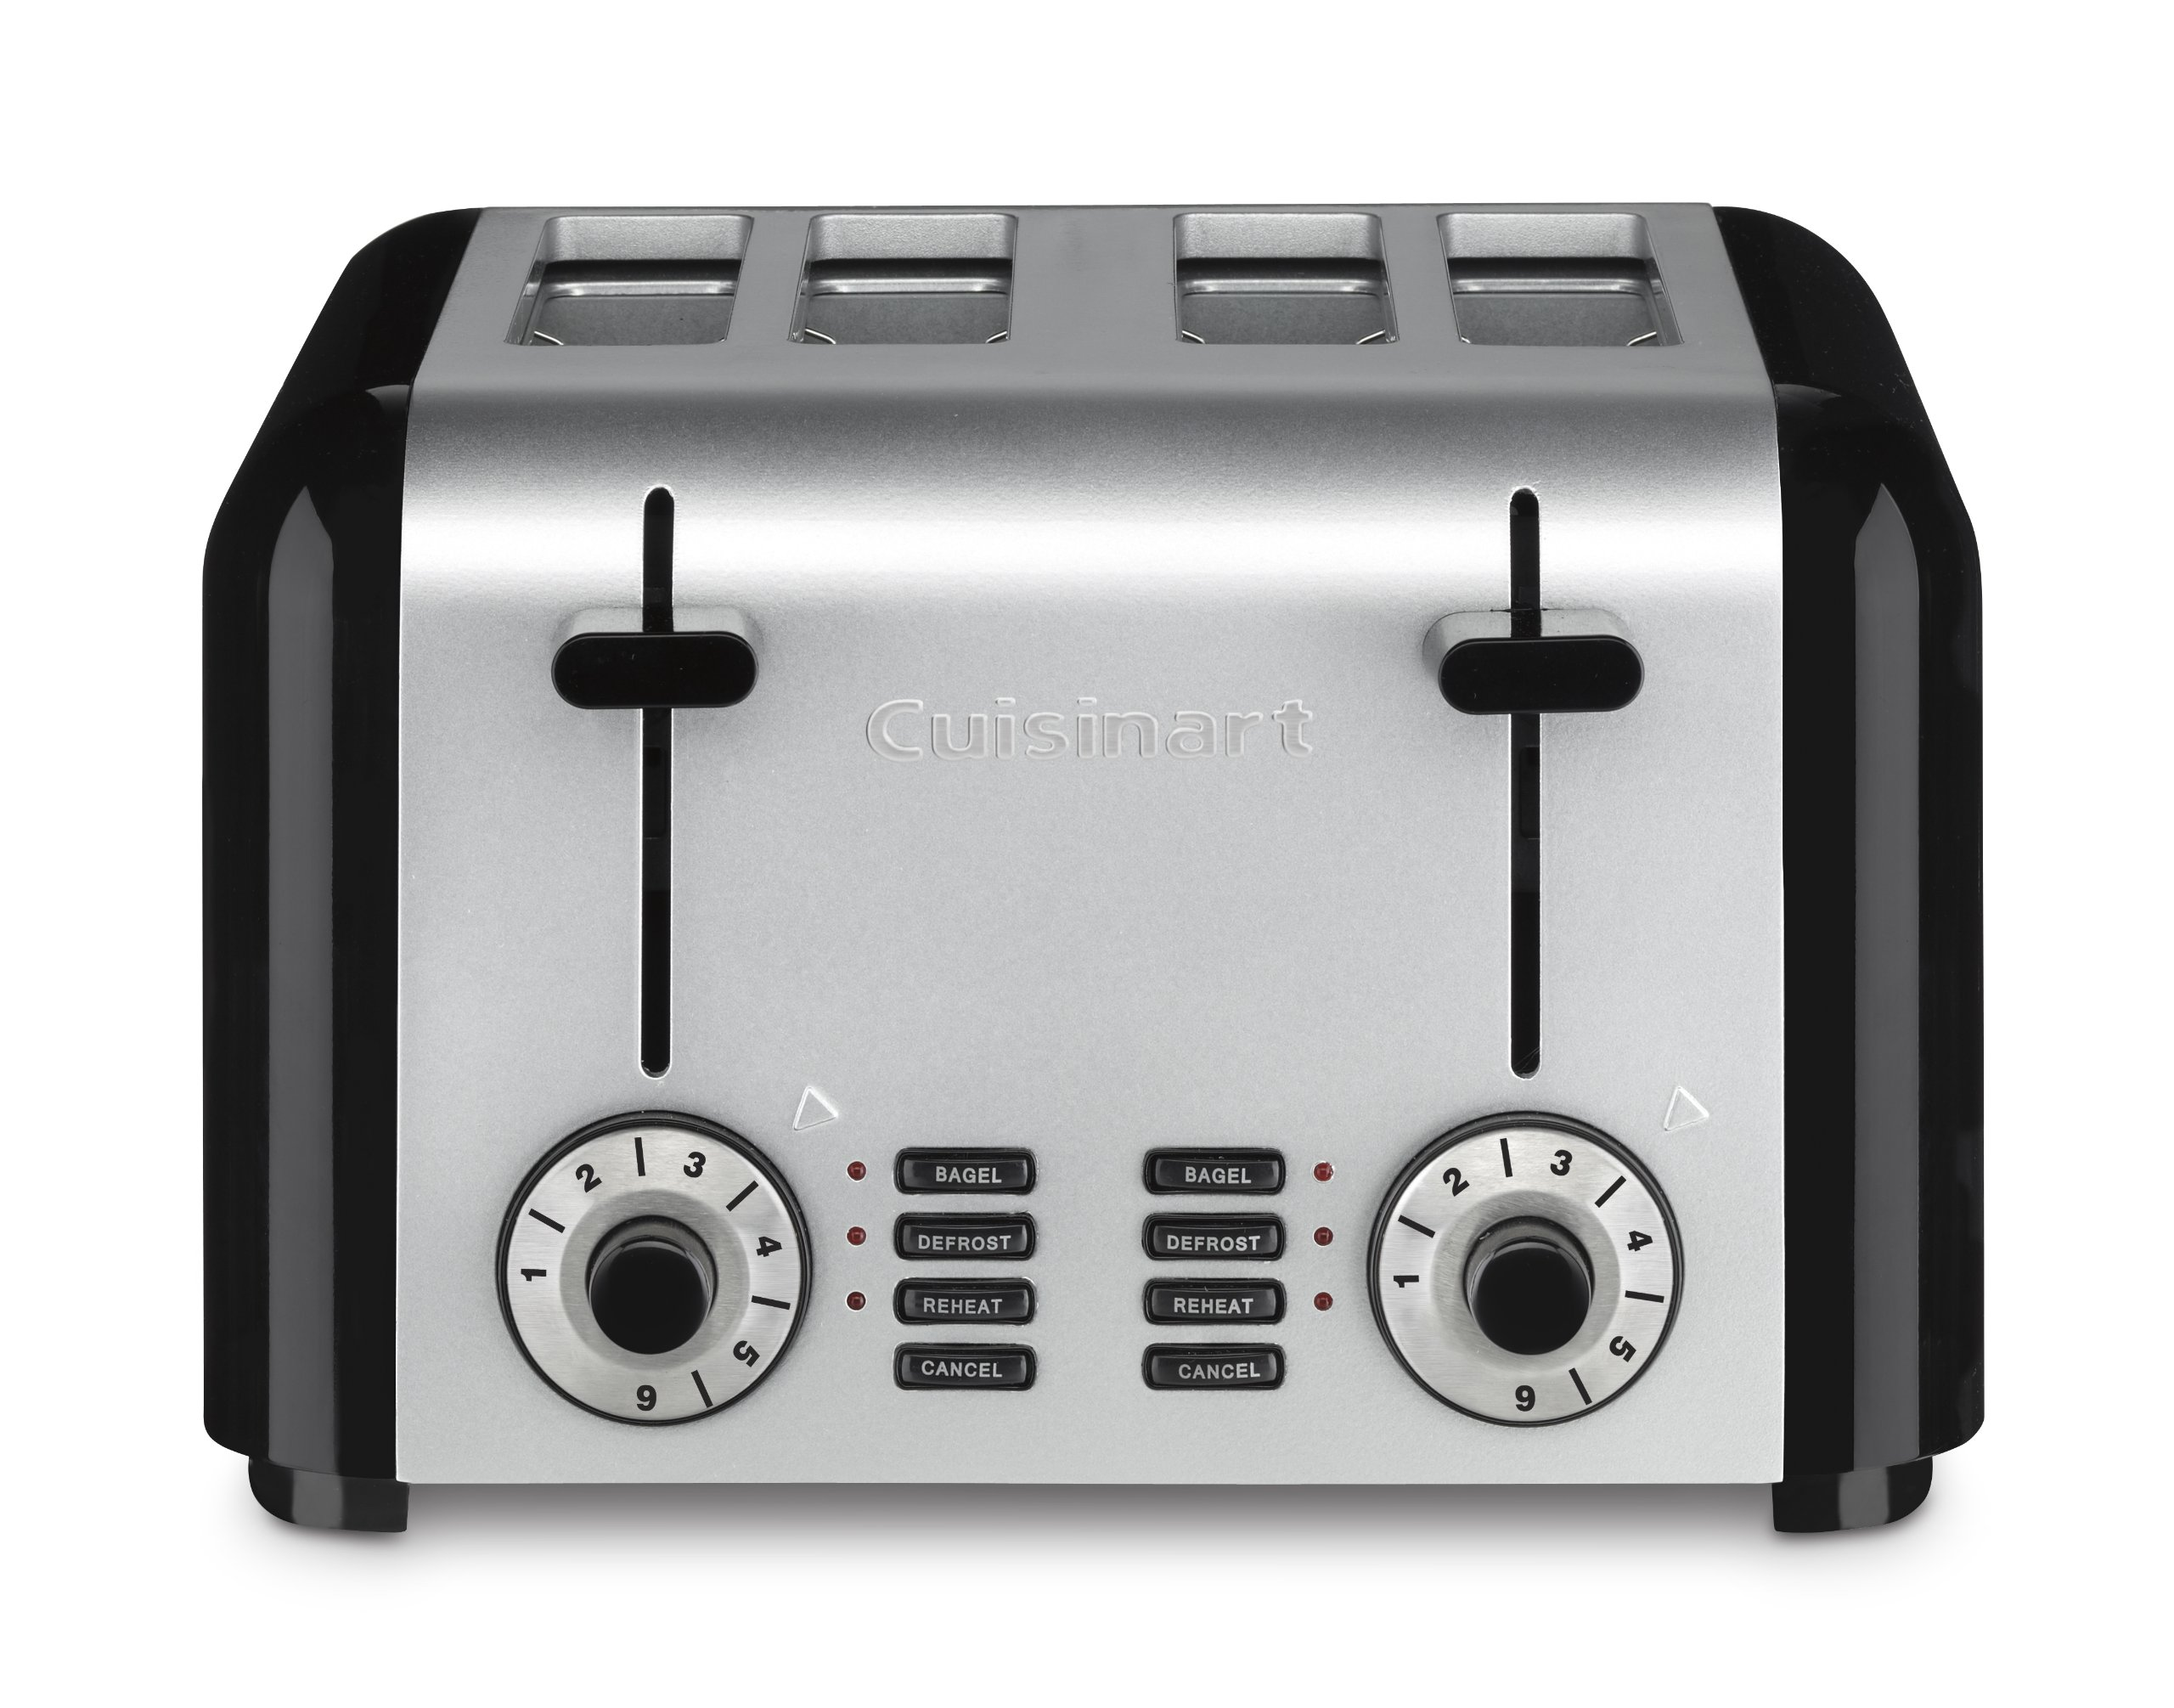 Cuisinart CPT-340 Compact Stainless 4-Slice Toaster, Brushed Stainless by Cuisinart